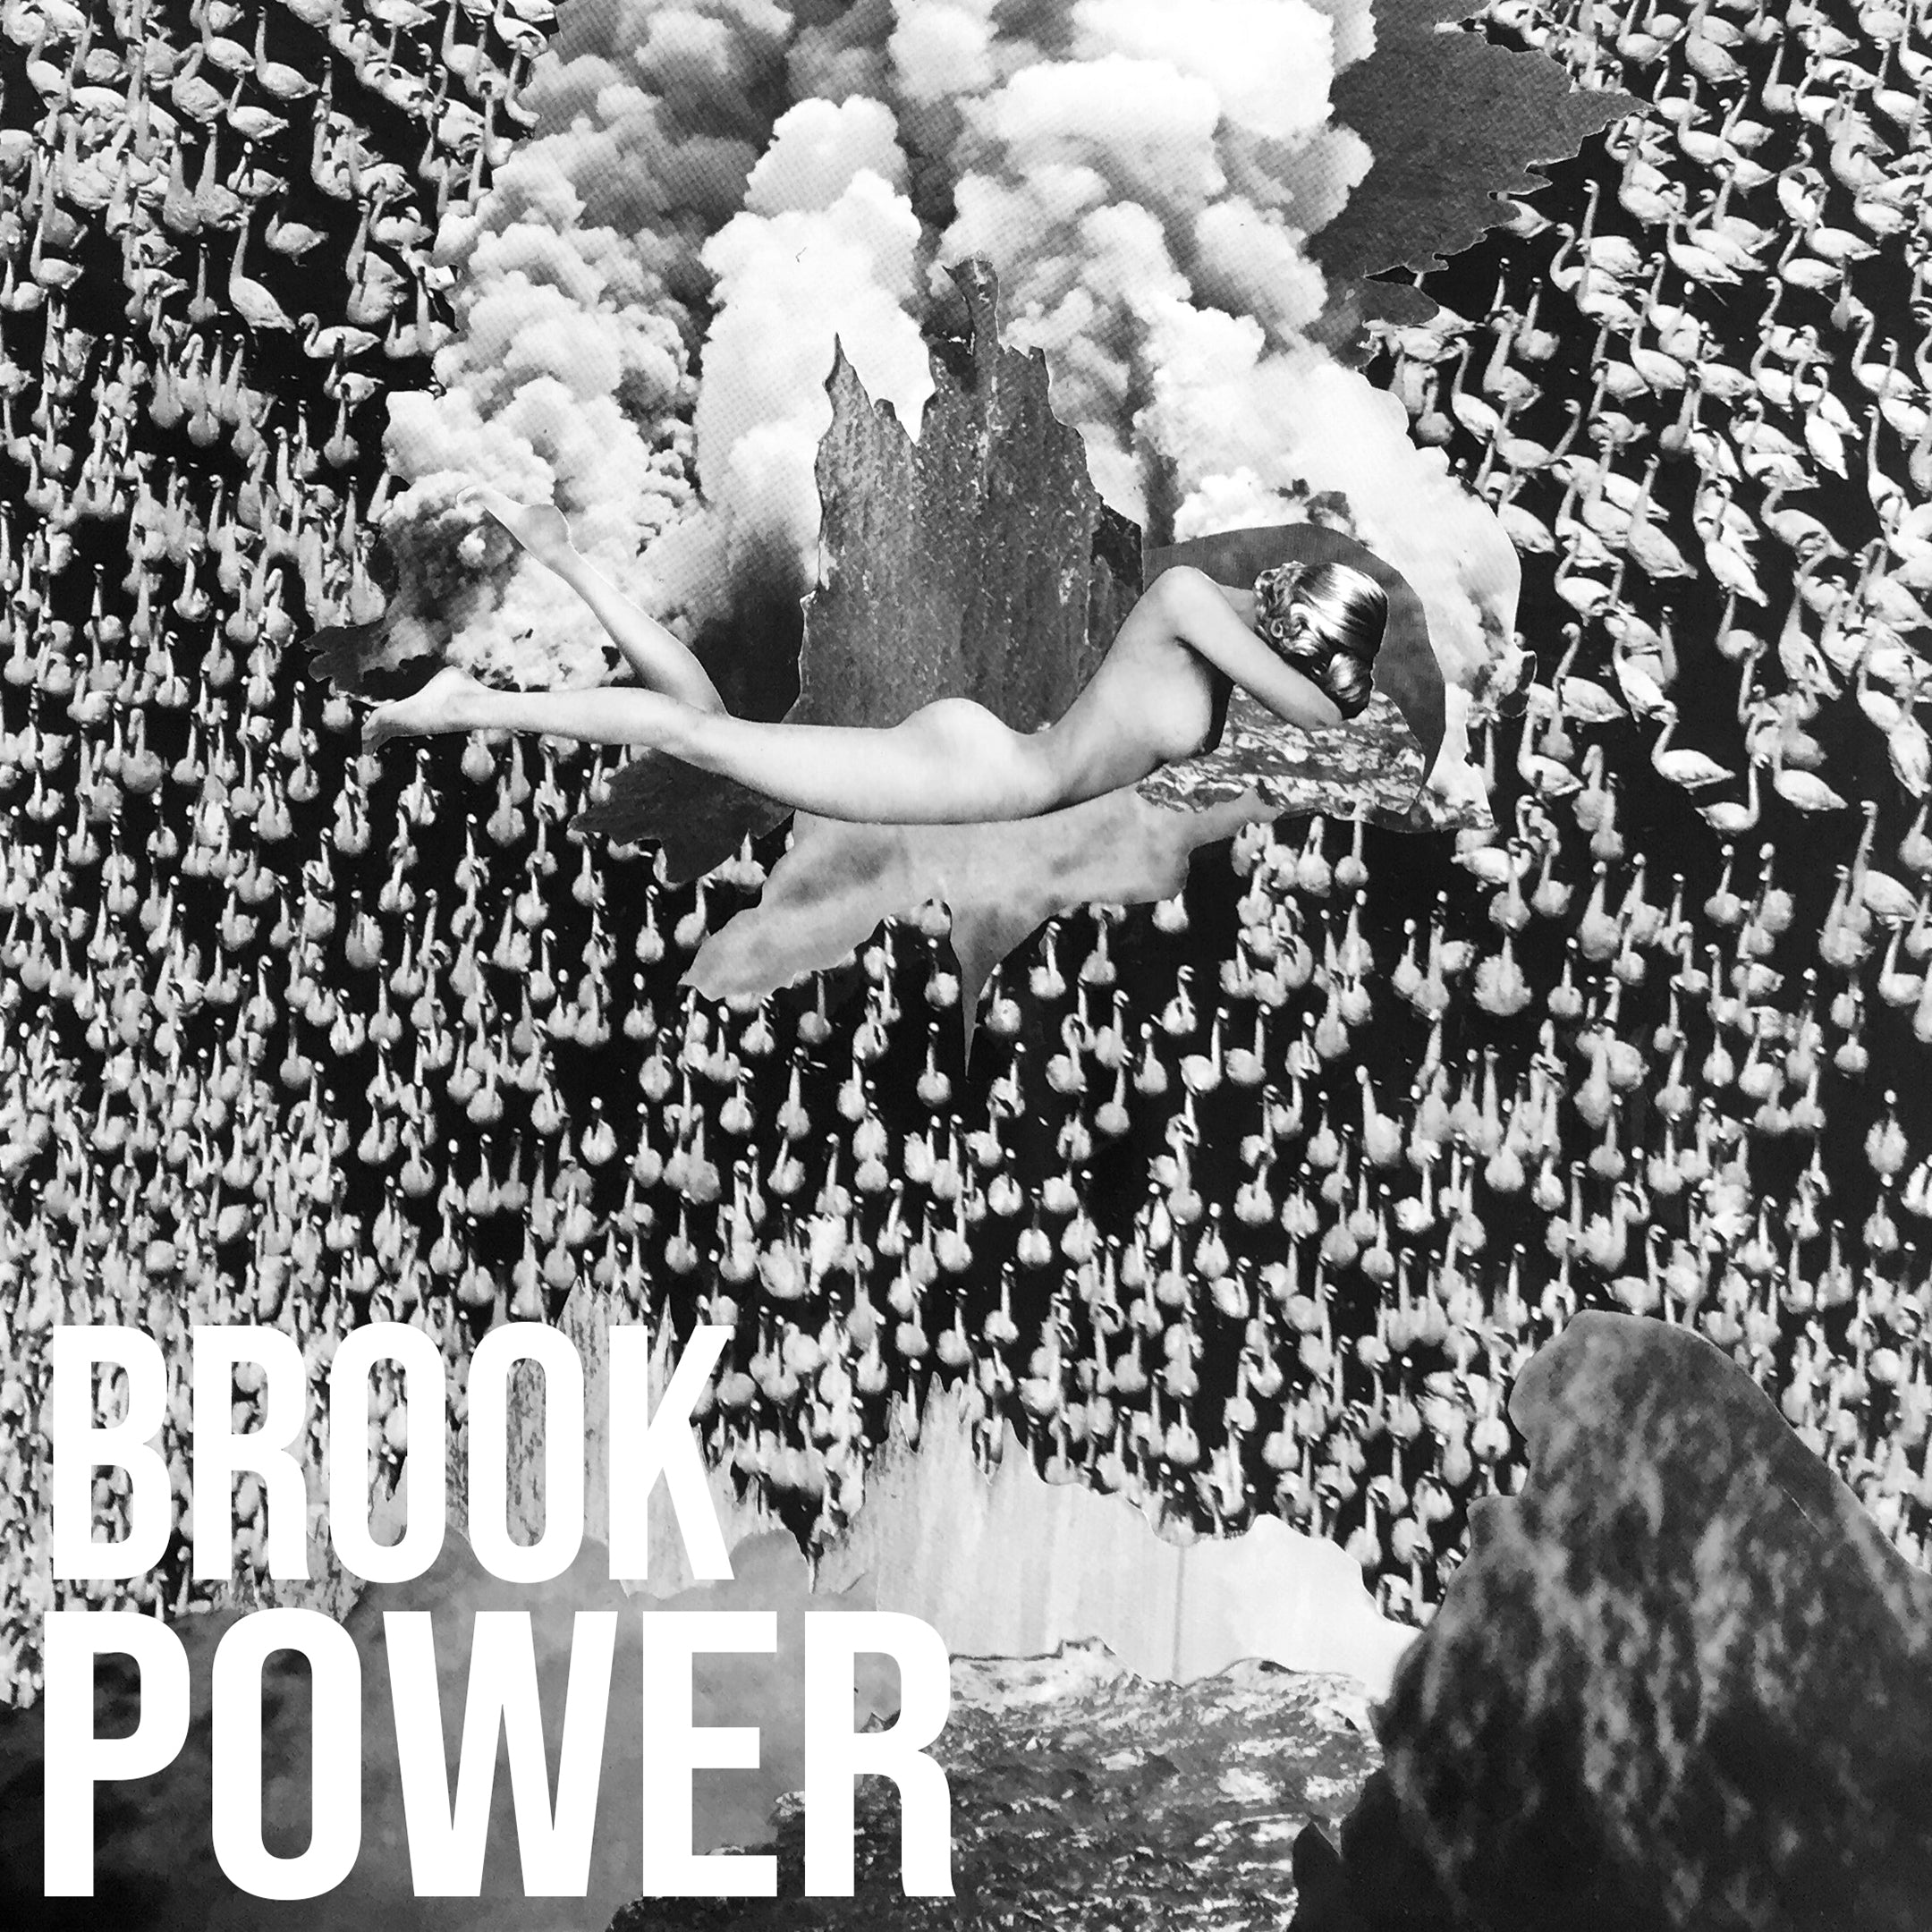 Brook Power